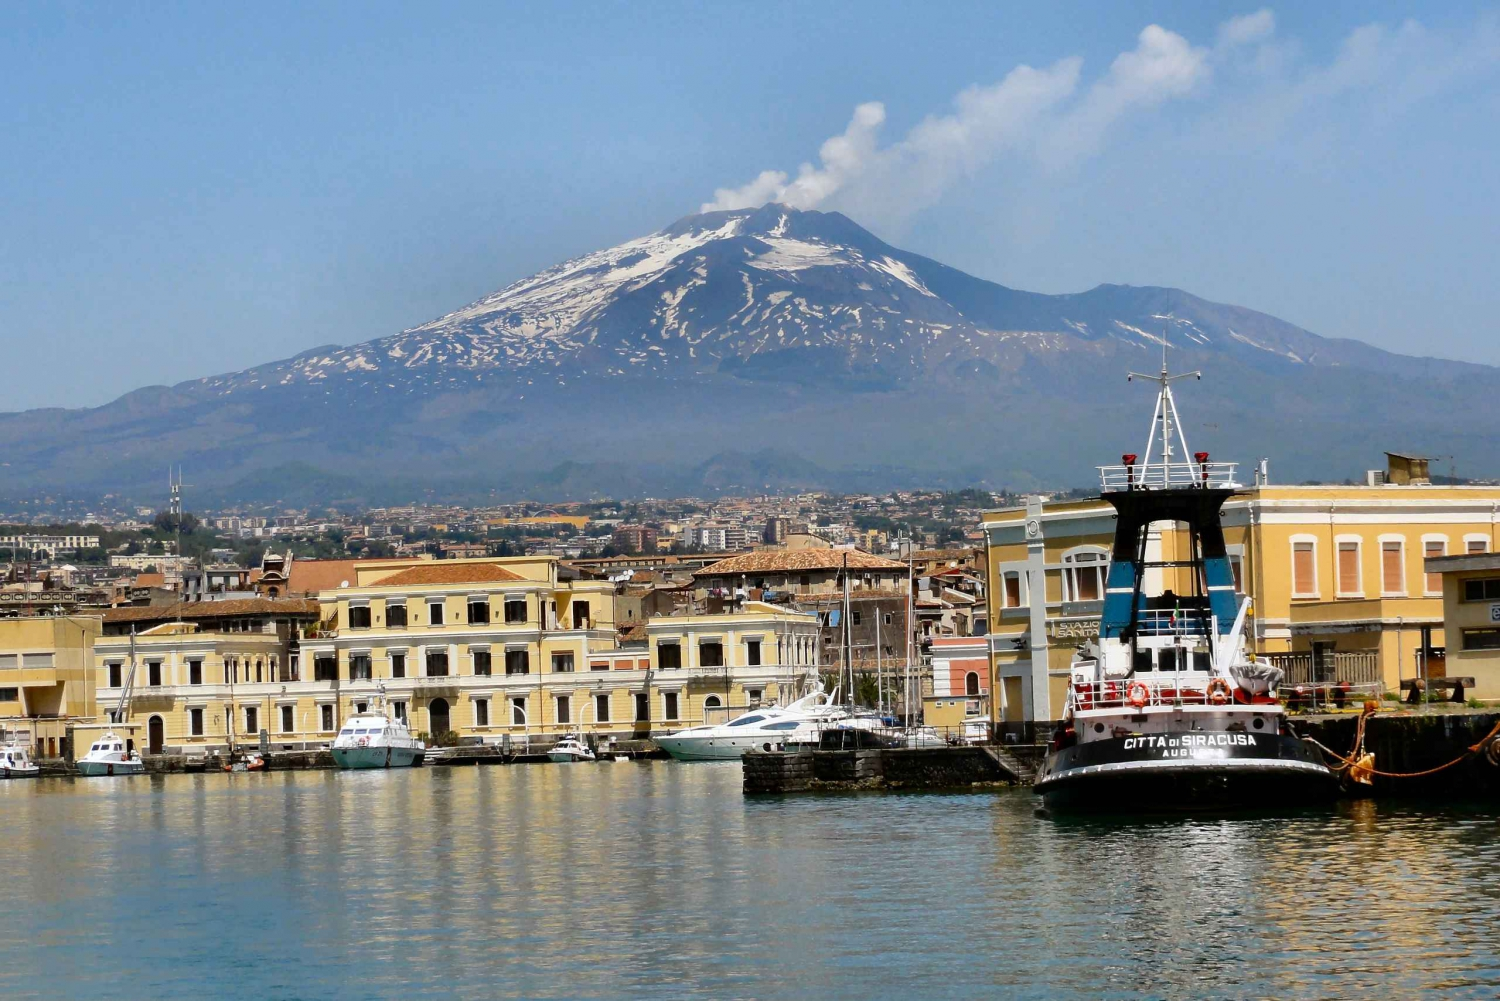 From Catania: Sailing Trip with Buffet Lunch